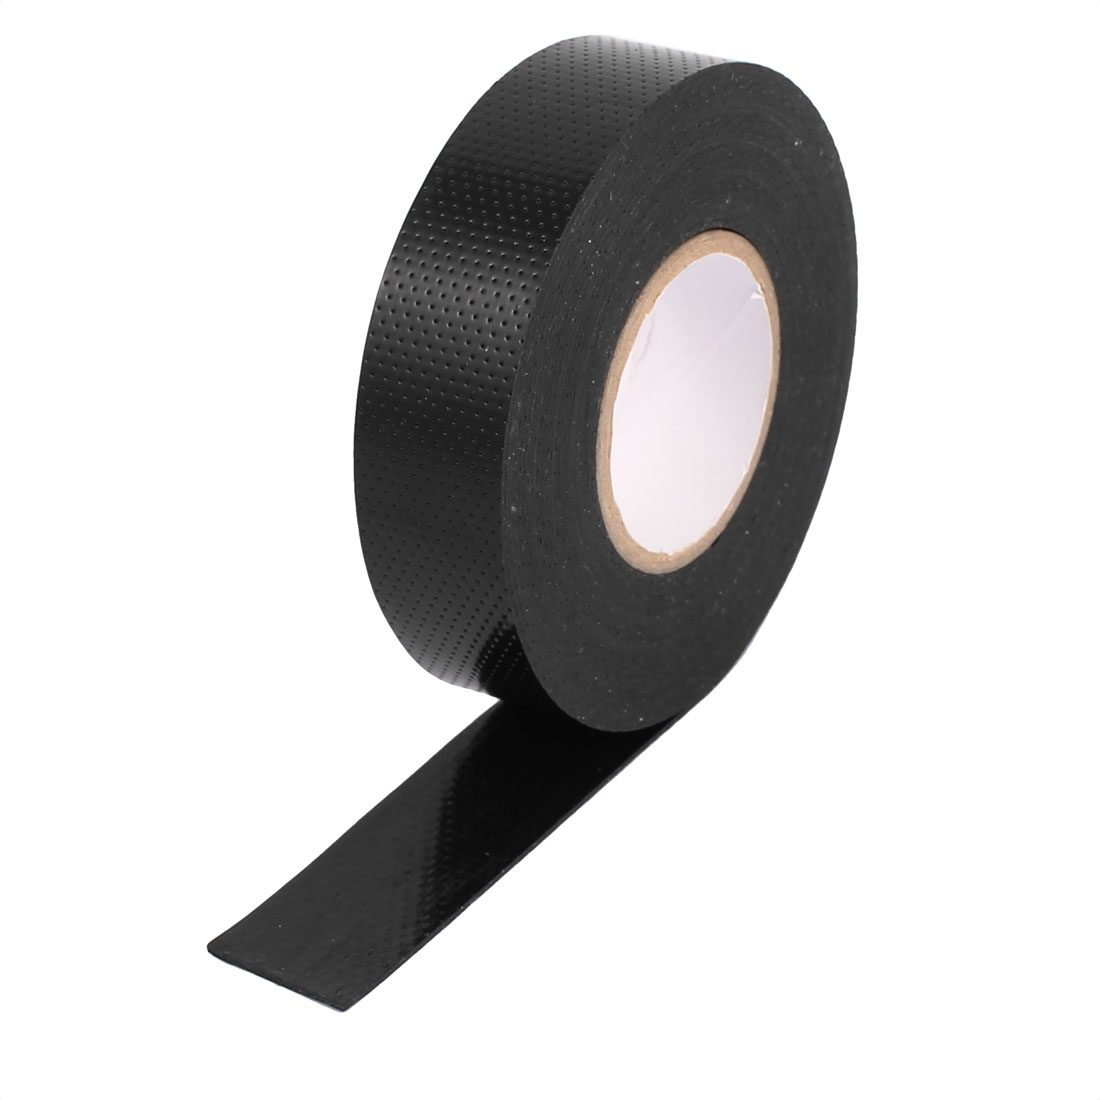 Black 21mm Width Waterproof PVC Electrical Wire Insulation Self-adhesive Roll Tape